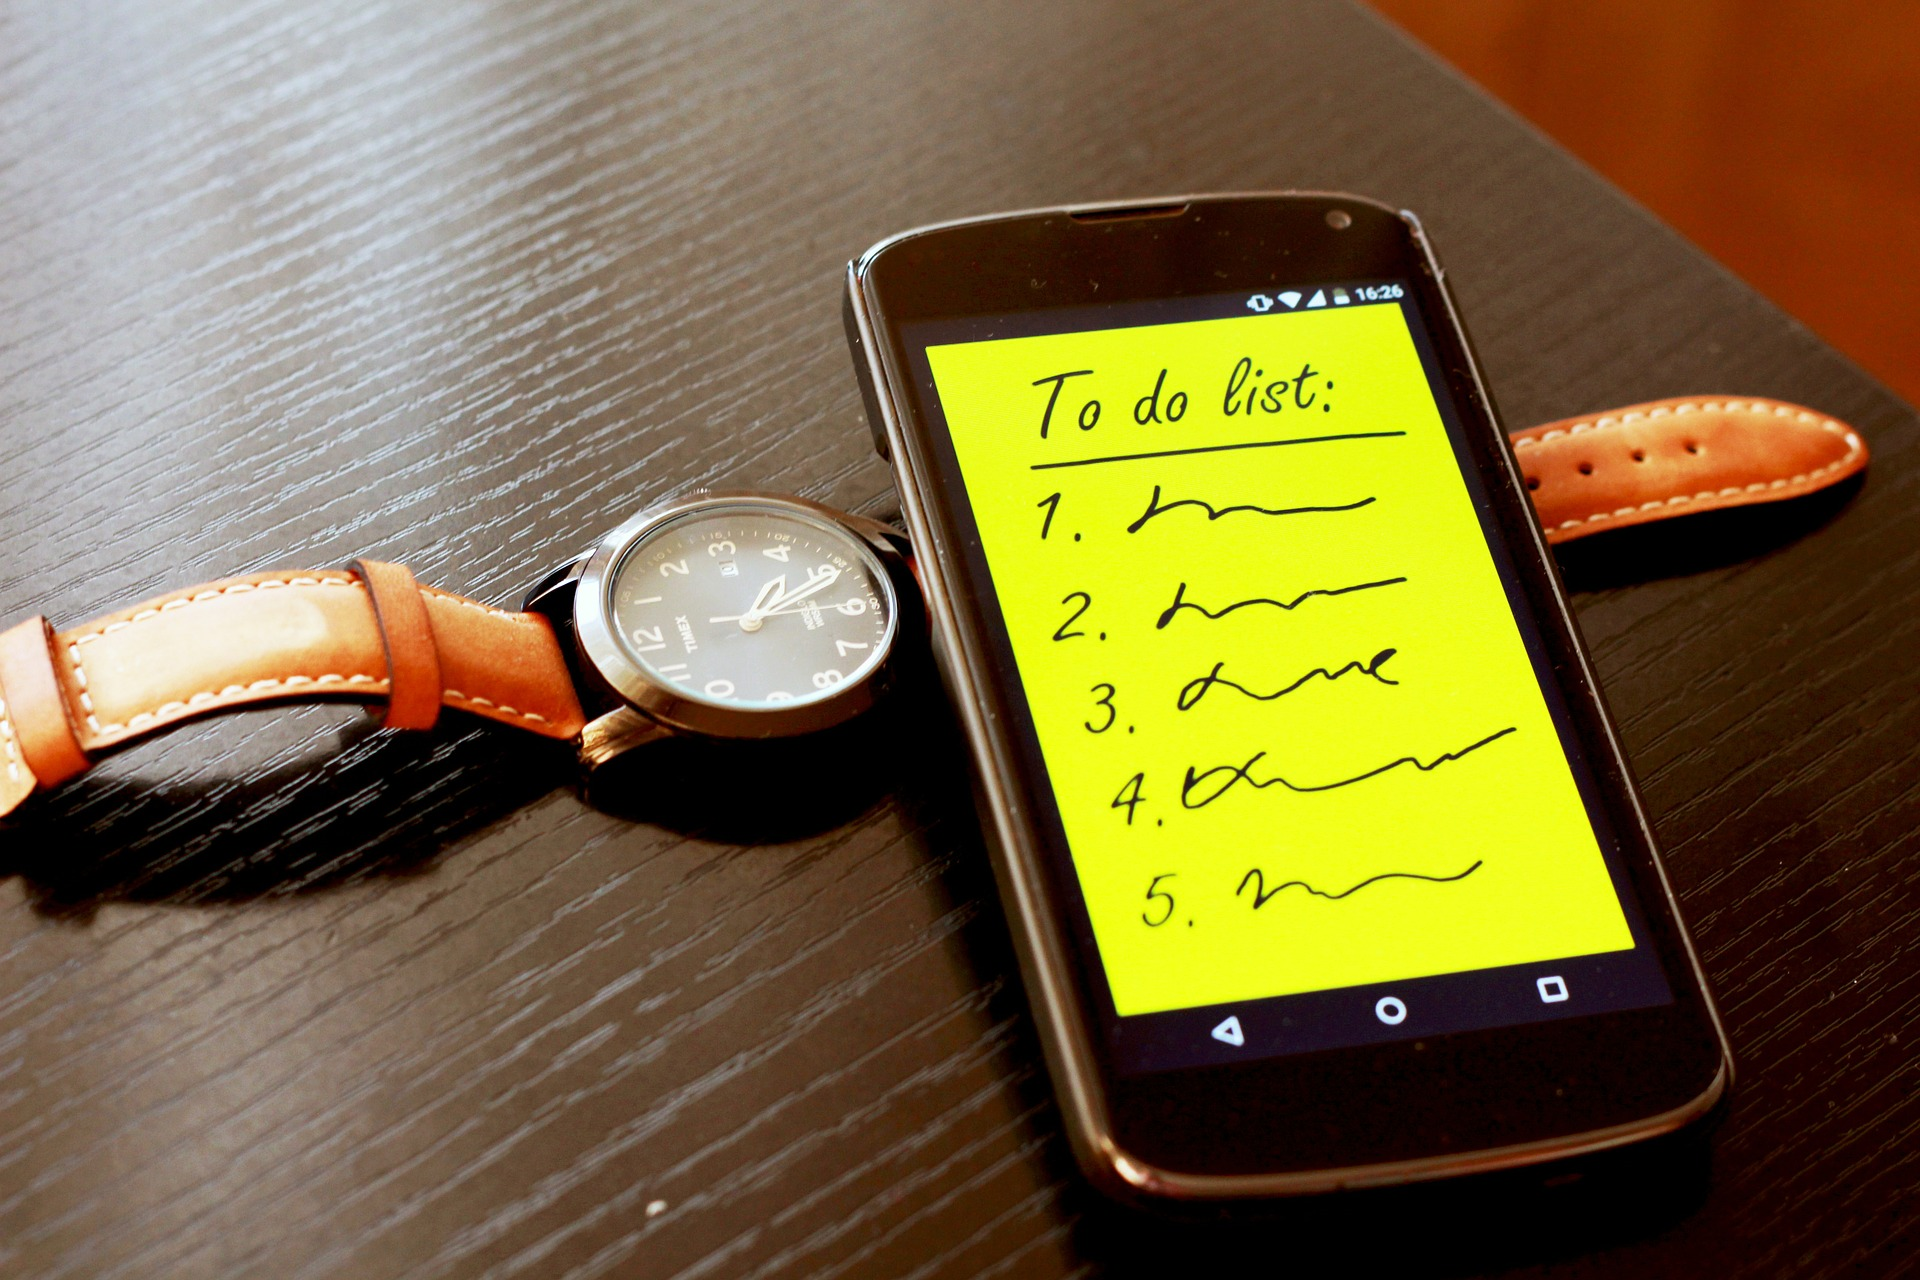 set a to-do list on your smartphone